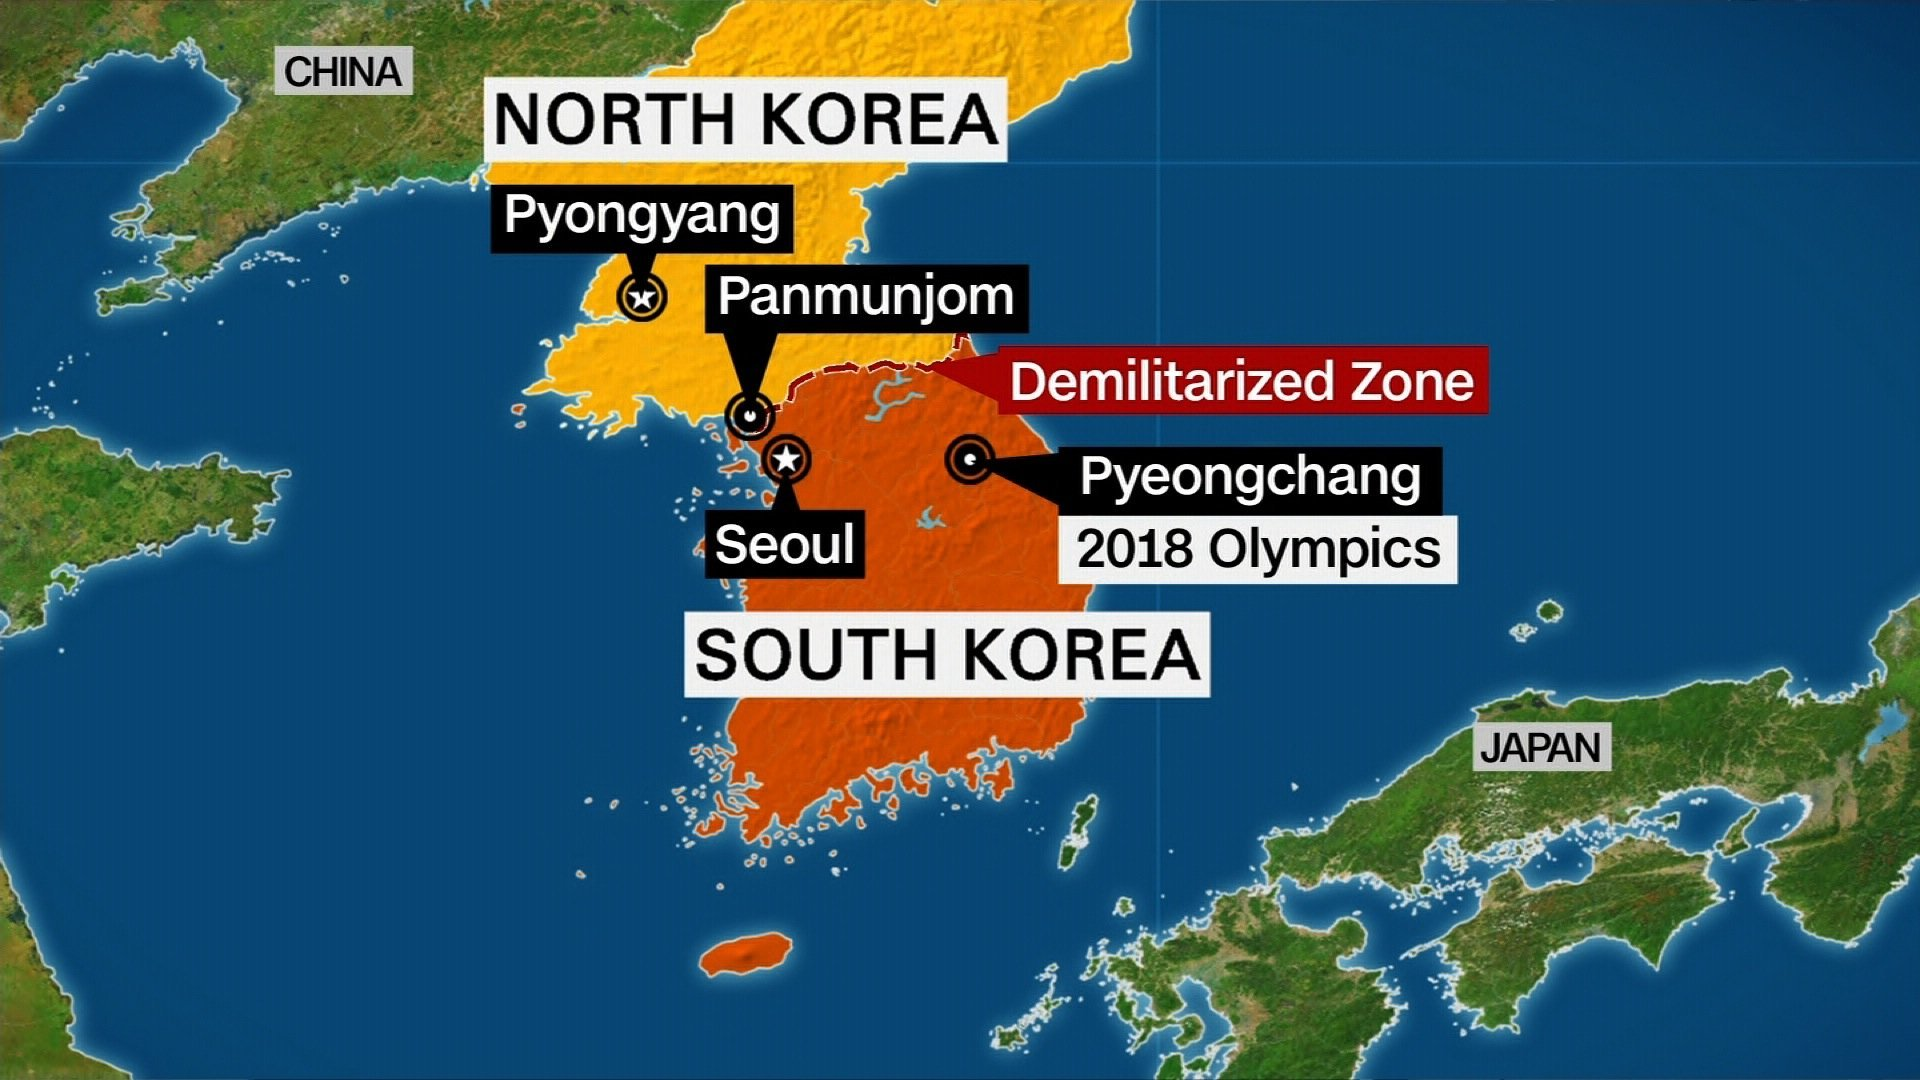 World #3 – South Korea signs deal to pay more for U.S. troops on map of malaya, map of germany, map of caribbean islands, map of kyushu, map of united states, map of north korea, map of switzerland, map of oman, map of korea and surrounding countries, map of south pacific, map hong kong, map of guam, map of seoul, map of venezuela, map of france, map of asia, map of south korean cities and towns, map of korean peninsula, map of iceland, map of philippines,